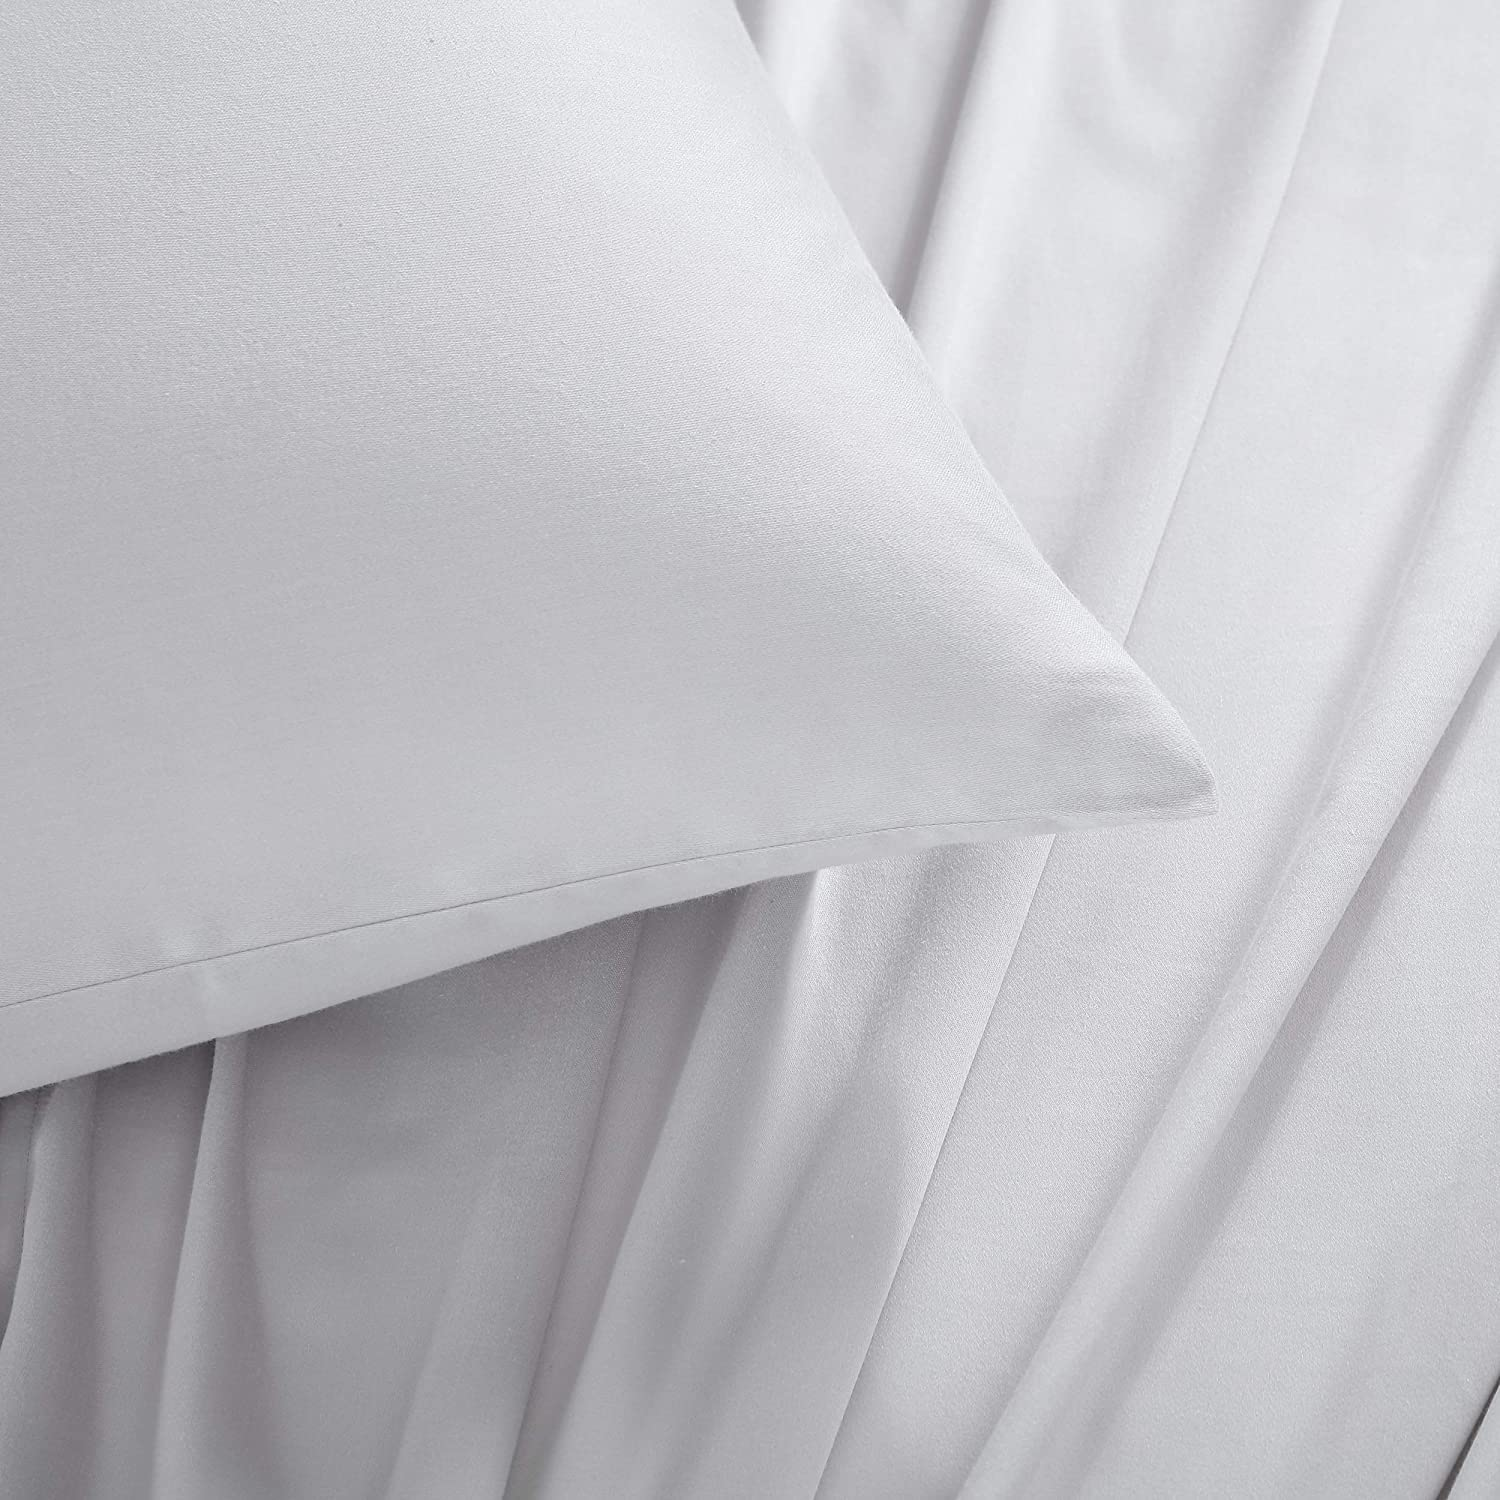 Kenneth Cole New York| Tencel Collection | Bed Sheet Set - 100% Cotton, Crisp & Cool, Lightweight & Moisture-Wicking Bedding, King, White